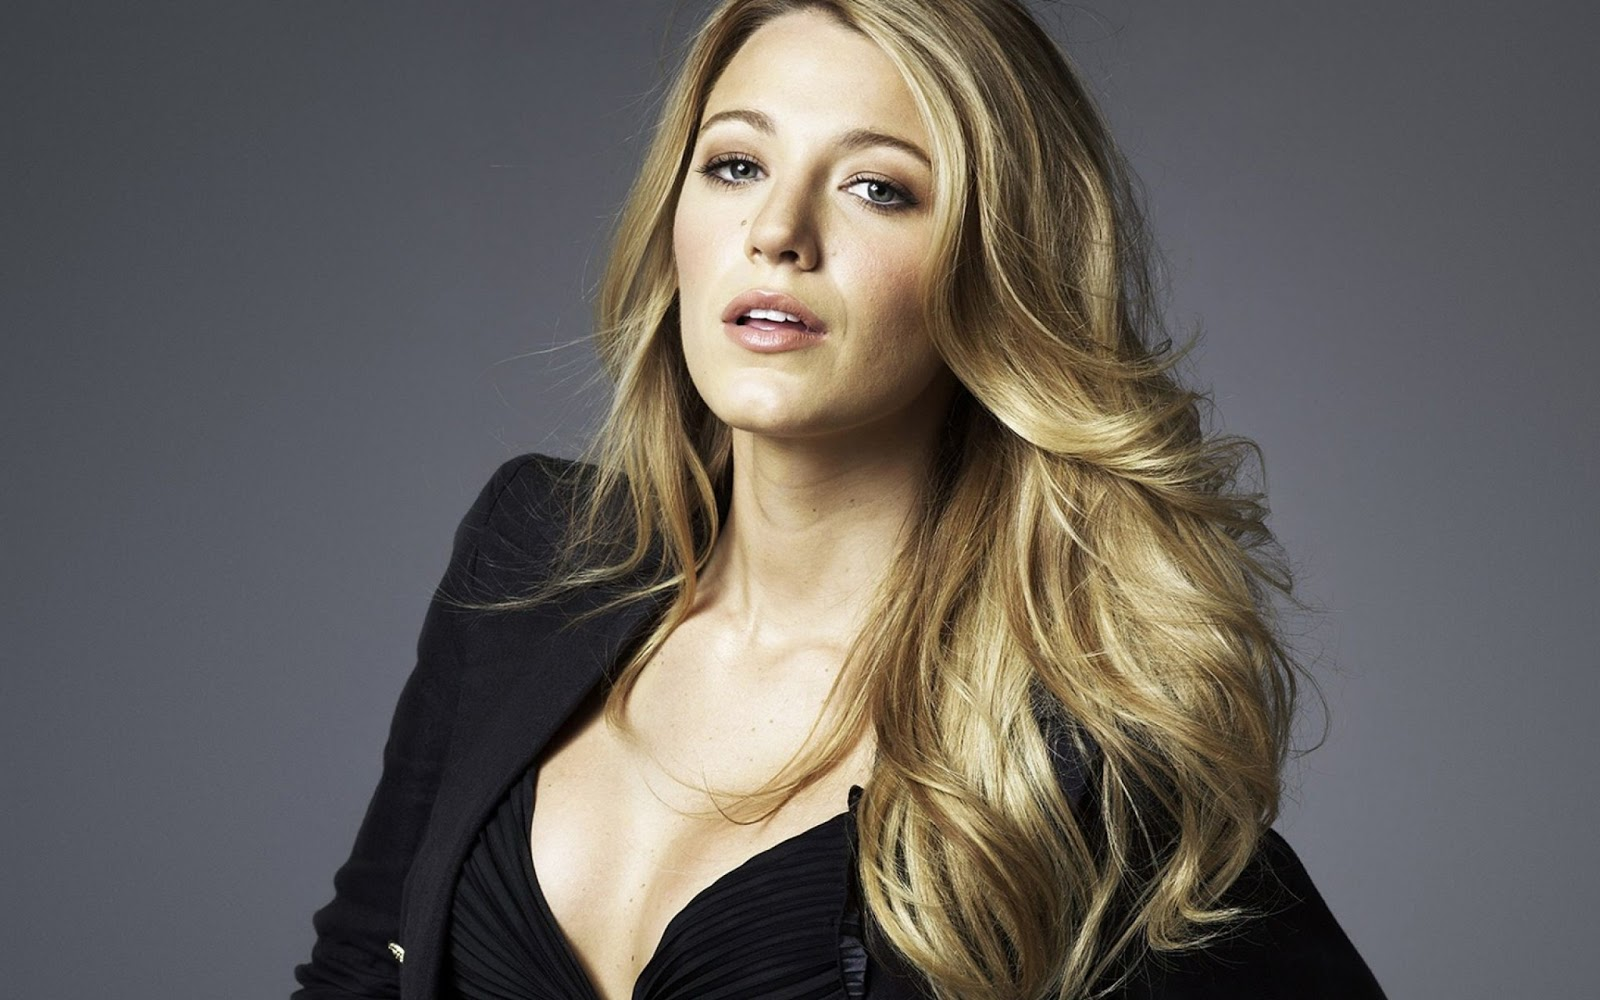 Blake Lively High Resolution wallpapers - HIGH RESOLUTION PICTURES